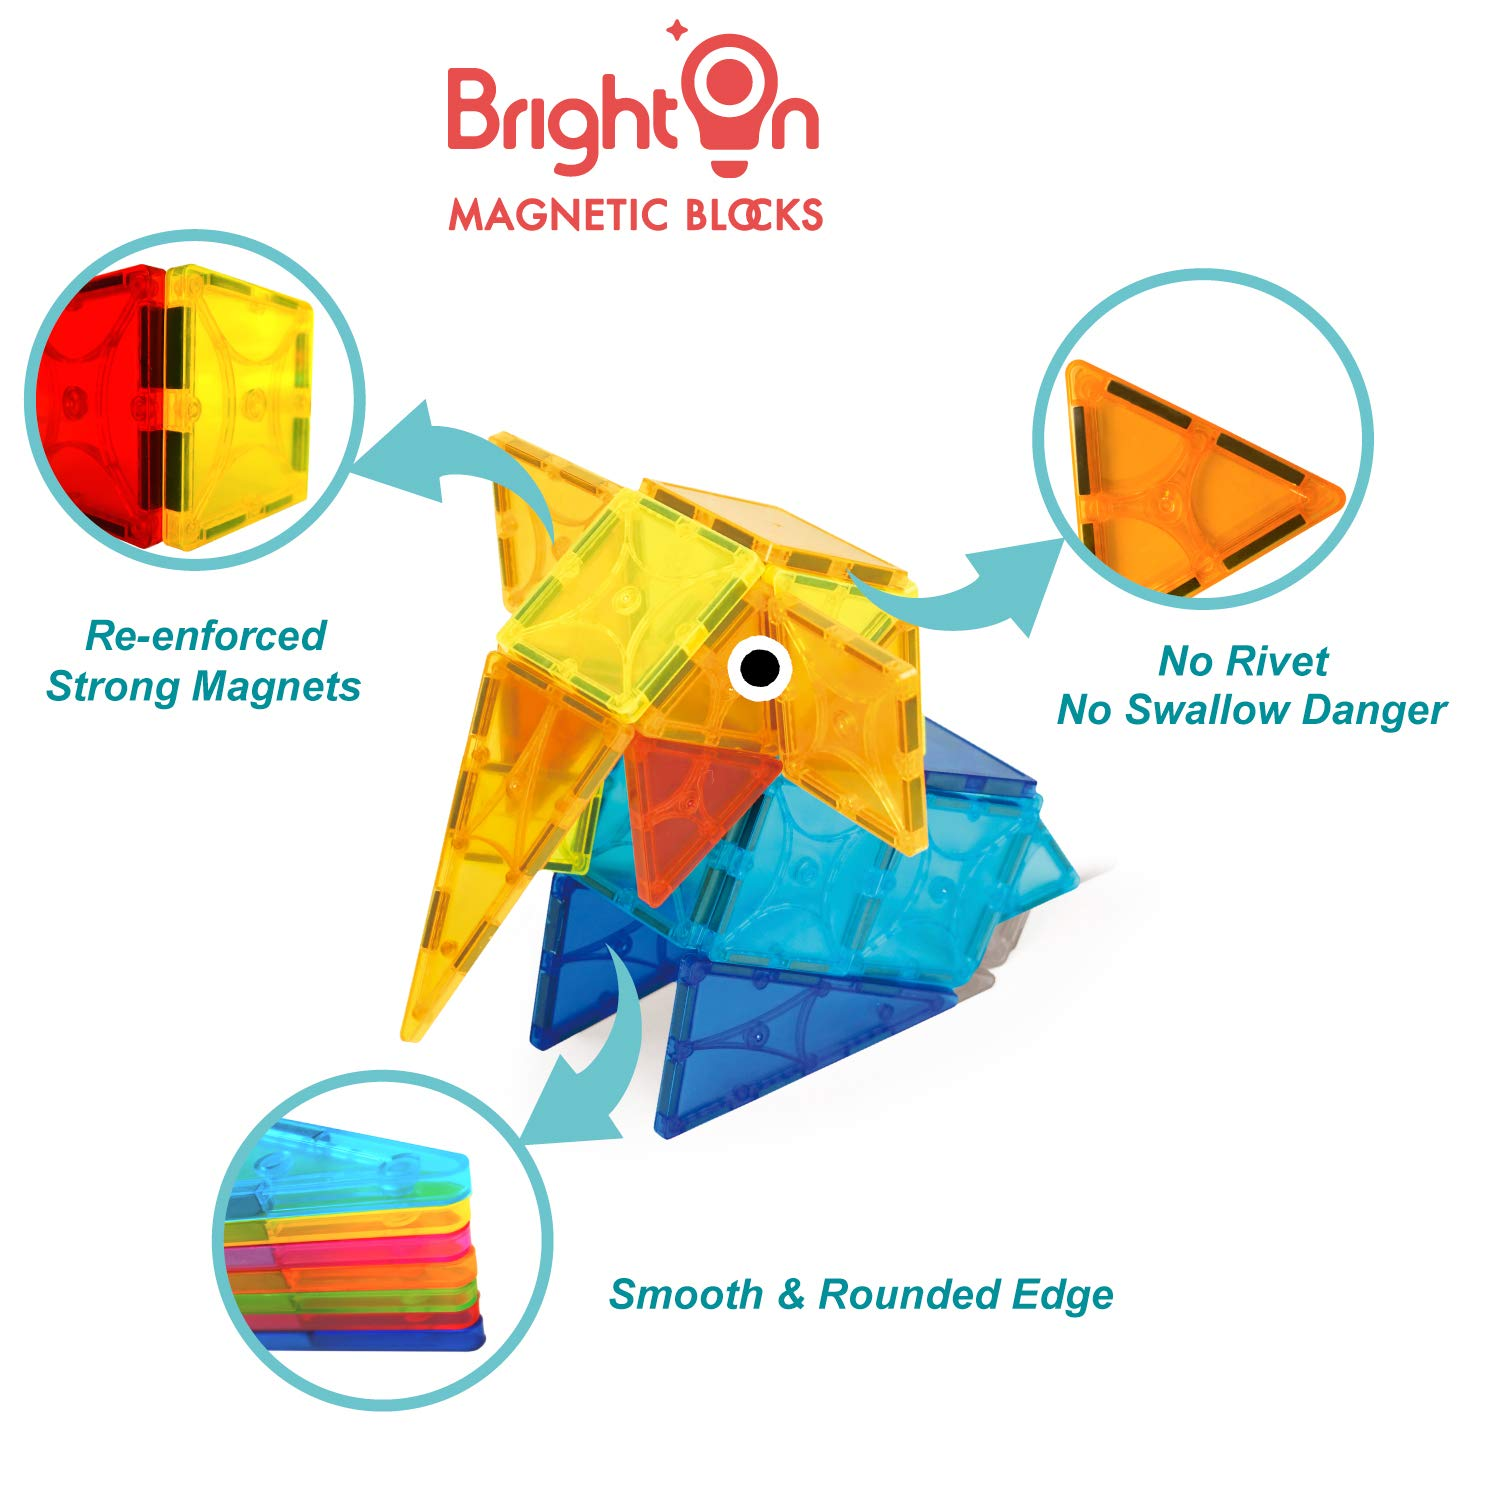 BrightOn Educational Kids Toys Magnetic Building Blocks, Creative Toys 3D Magnetic Blocks for Kids, Imagination Magnets Building Tiles for Children 105Pcs by BrightOn (Image #4)